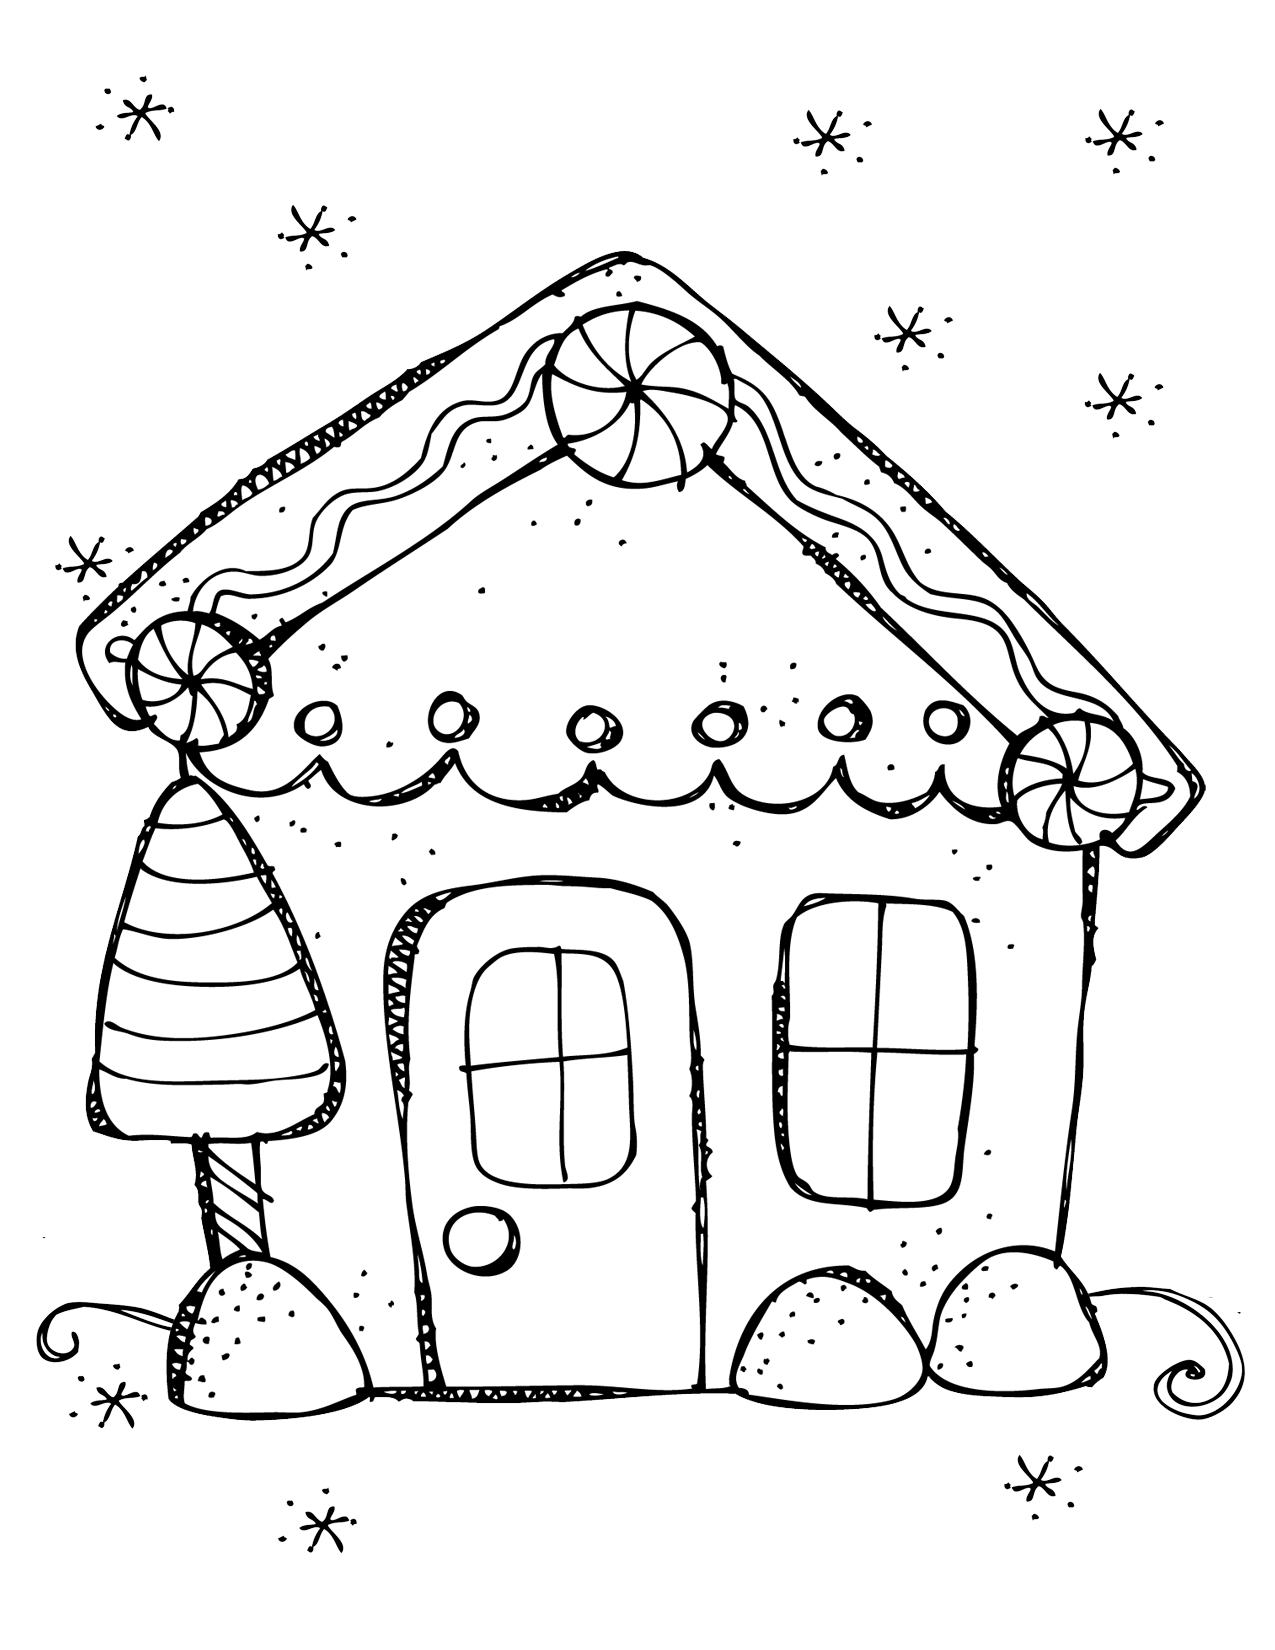 Christmas Coloring Pages Games With Unique Gingerbread House Gallery Free